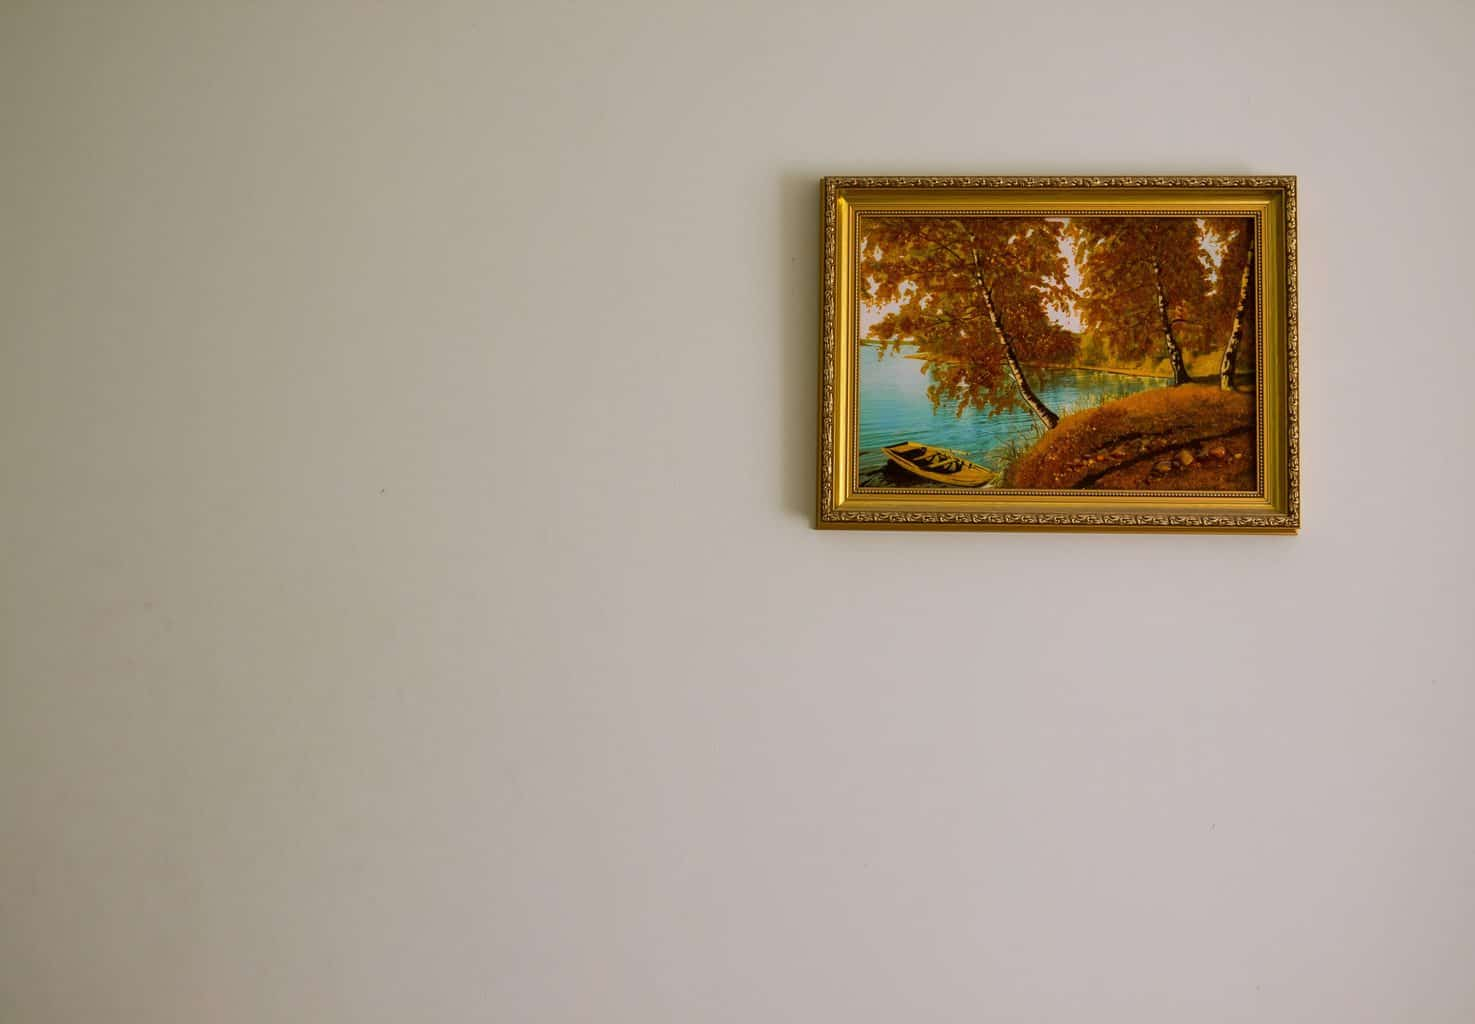 A golden poster framed and mounted on a white wall